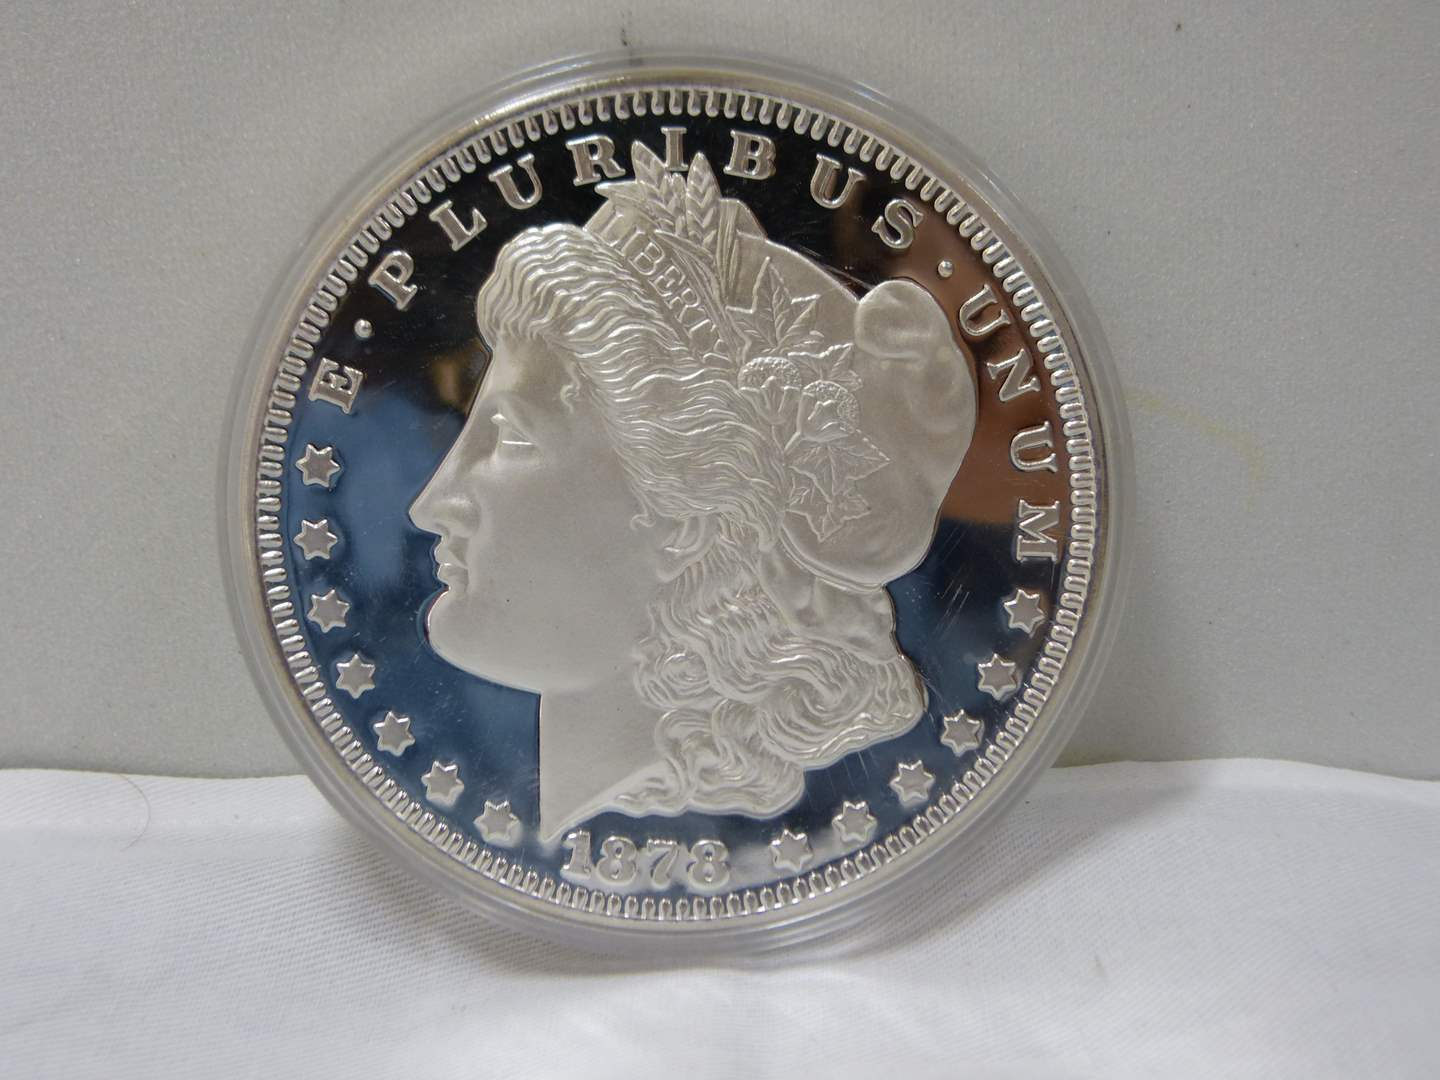 Lot # 201  WOW Limited Edition #00300 1/2 POUND PURE SILVER Morgan (YES HALF POUND) (main image)